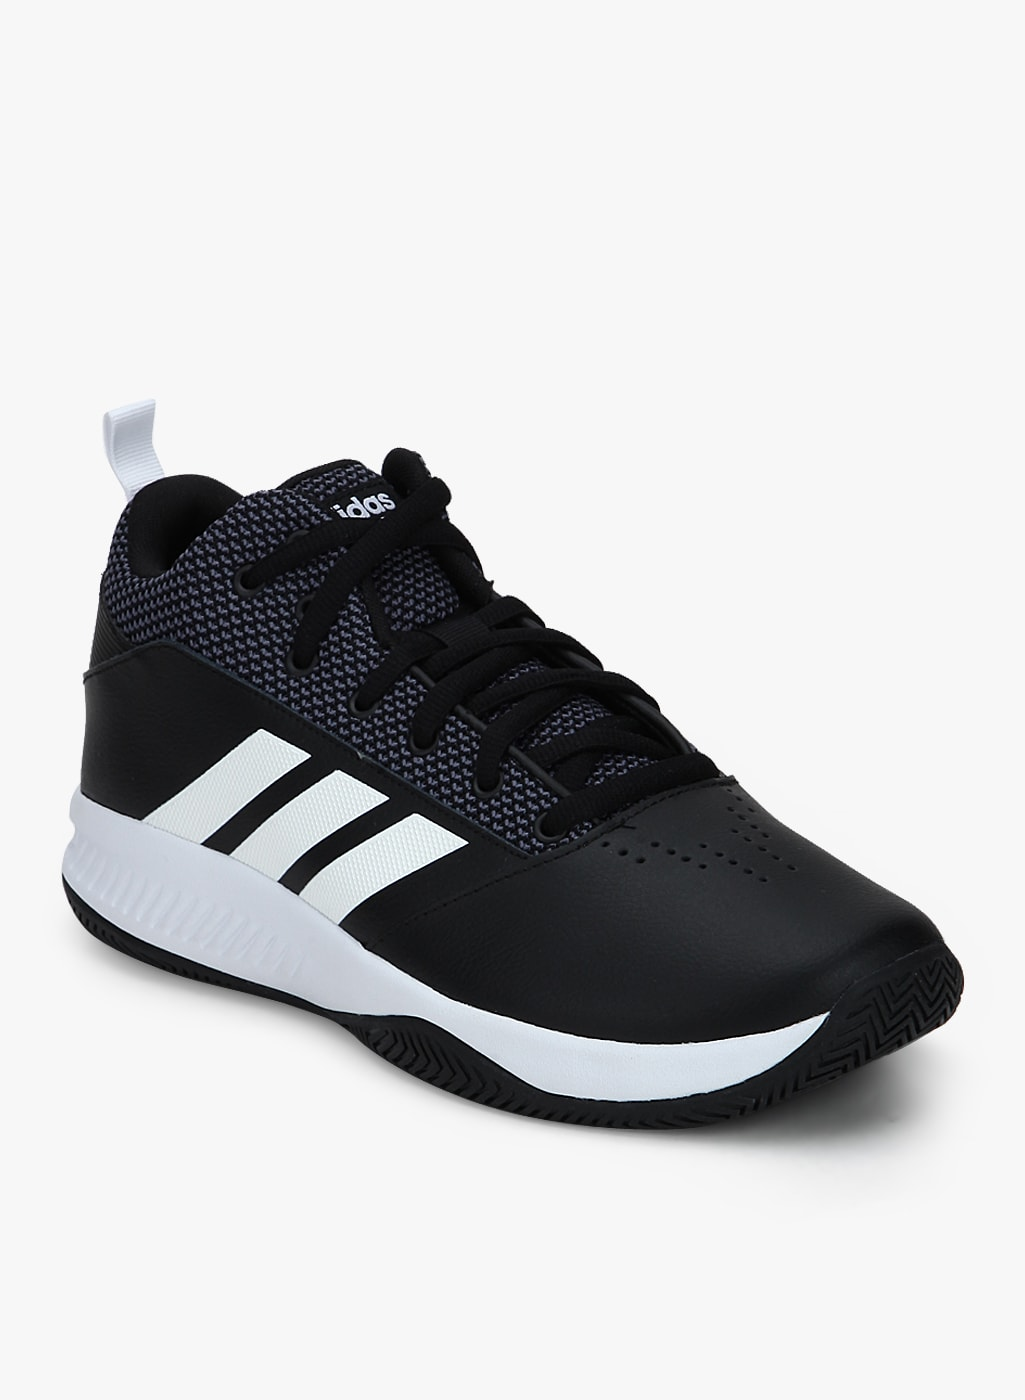 b176faef5fe54e Buy ADIDAS Men Black Speed END2END Basketball Shoes - Sports Shoes ...